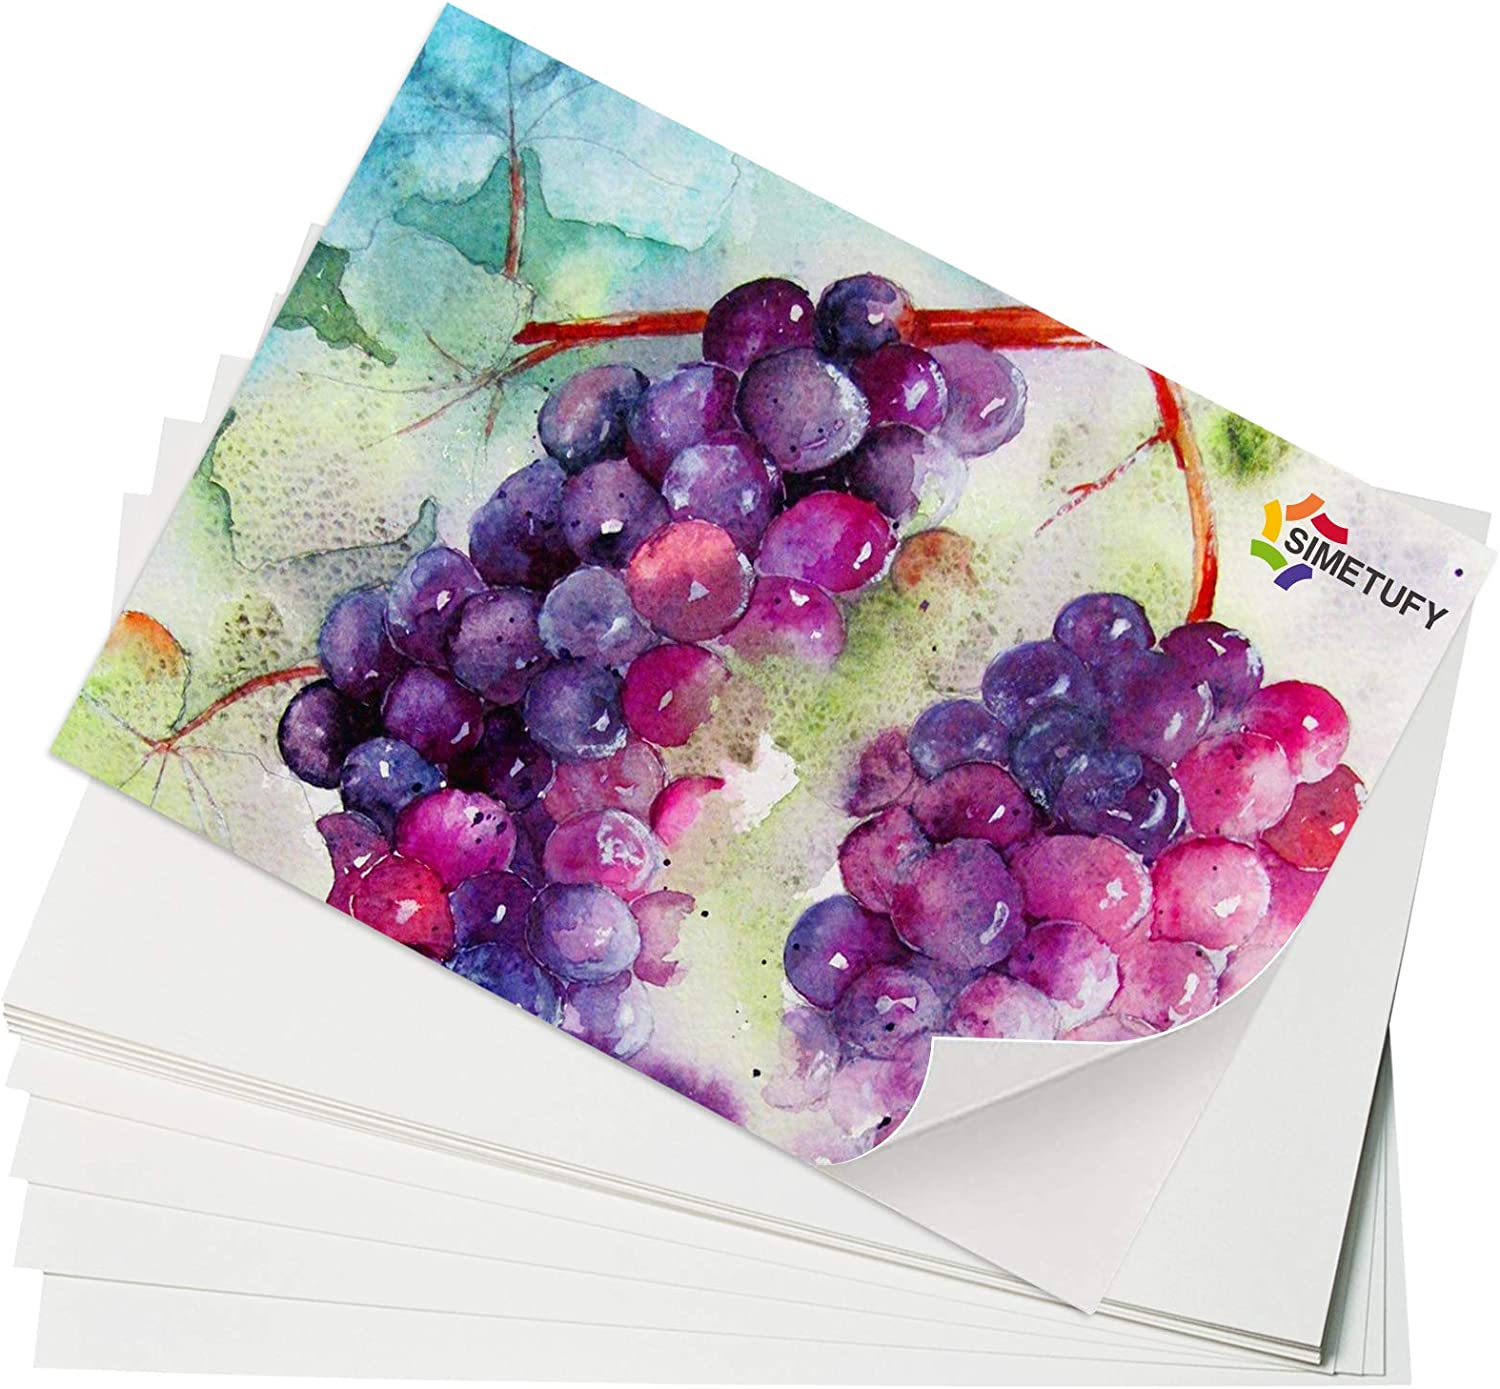 Max 60% OFF Superise Painting Paper Now free shipping 20 Sheets Size 300gsm Watercolor -